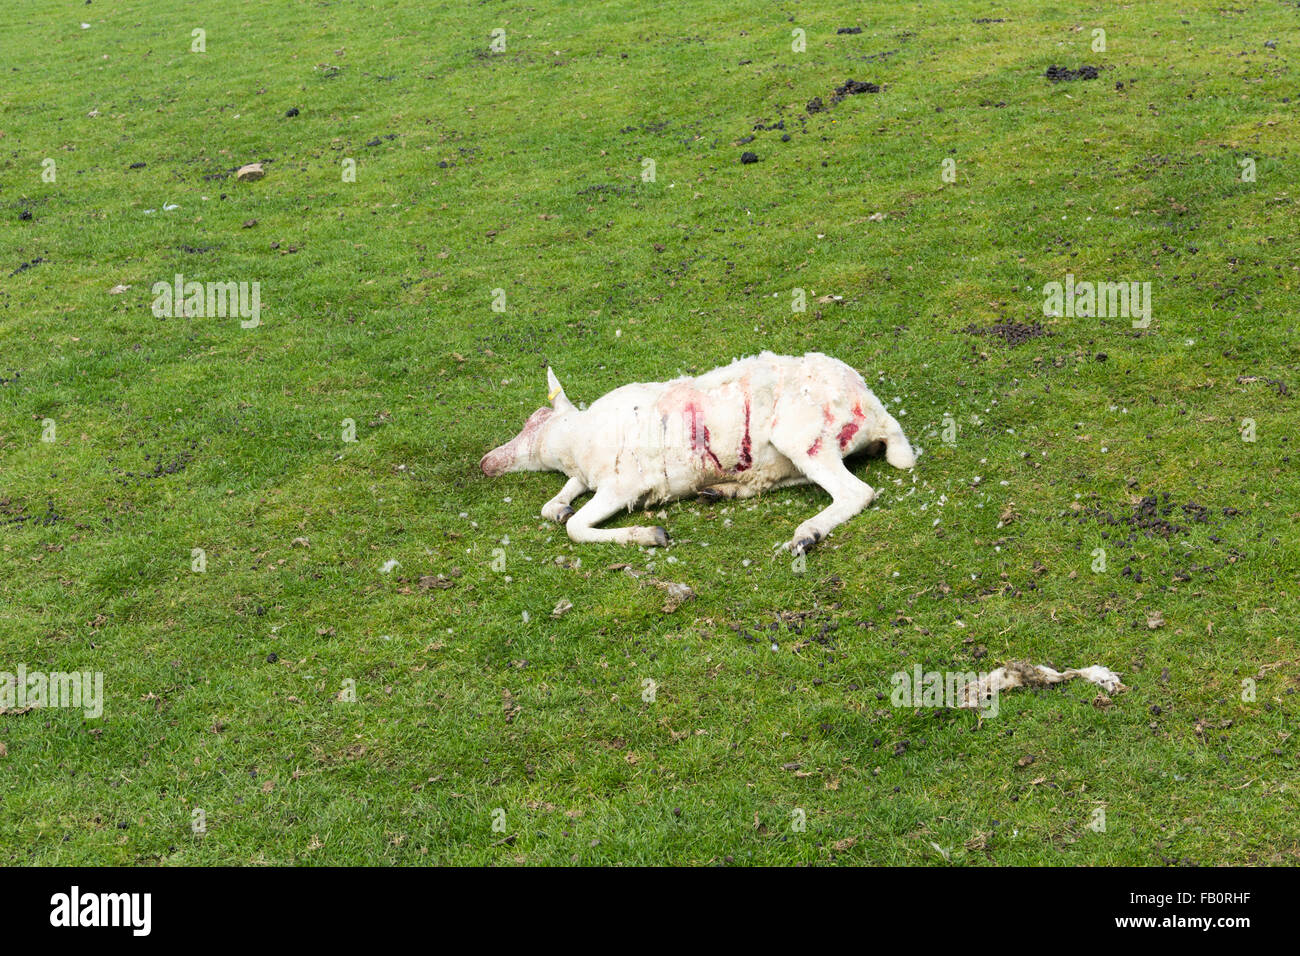 A dead sheep (ovis aries) with significant injuries, discovered on an upland pasture field in north-west England. - Stock Image